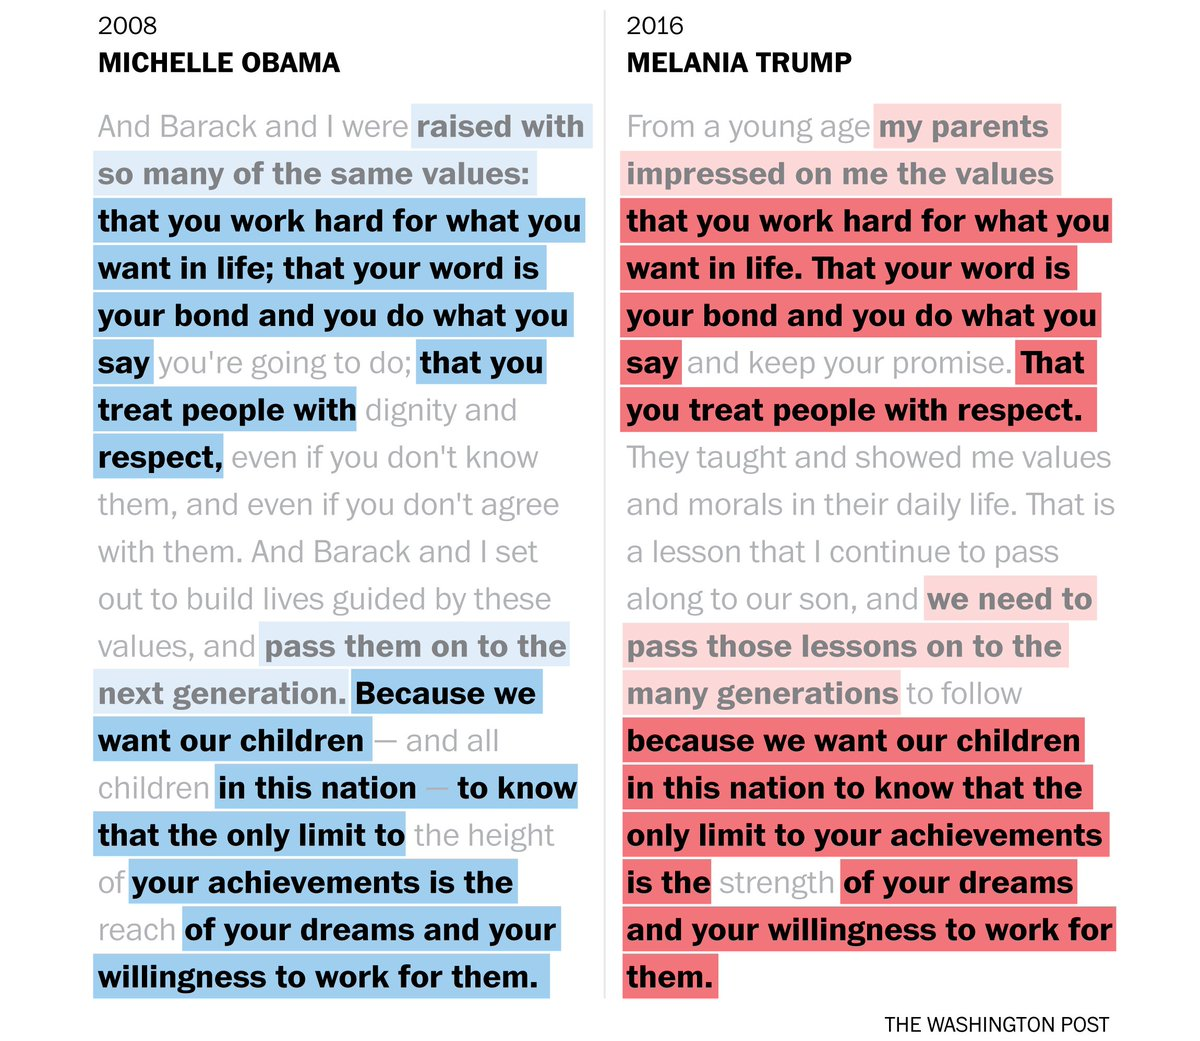 Parts of Melania Trump's speech were nearly identical to Michelle Obama's speech in 2008. Other parts were similar. https://t.co/0XkqQzeOLf